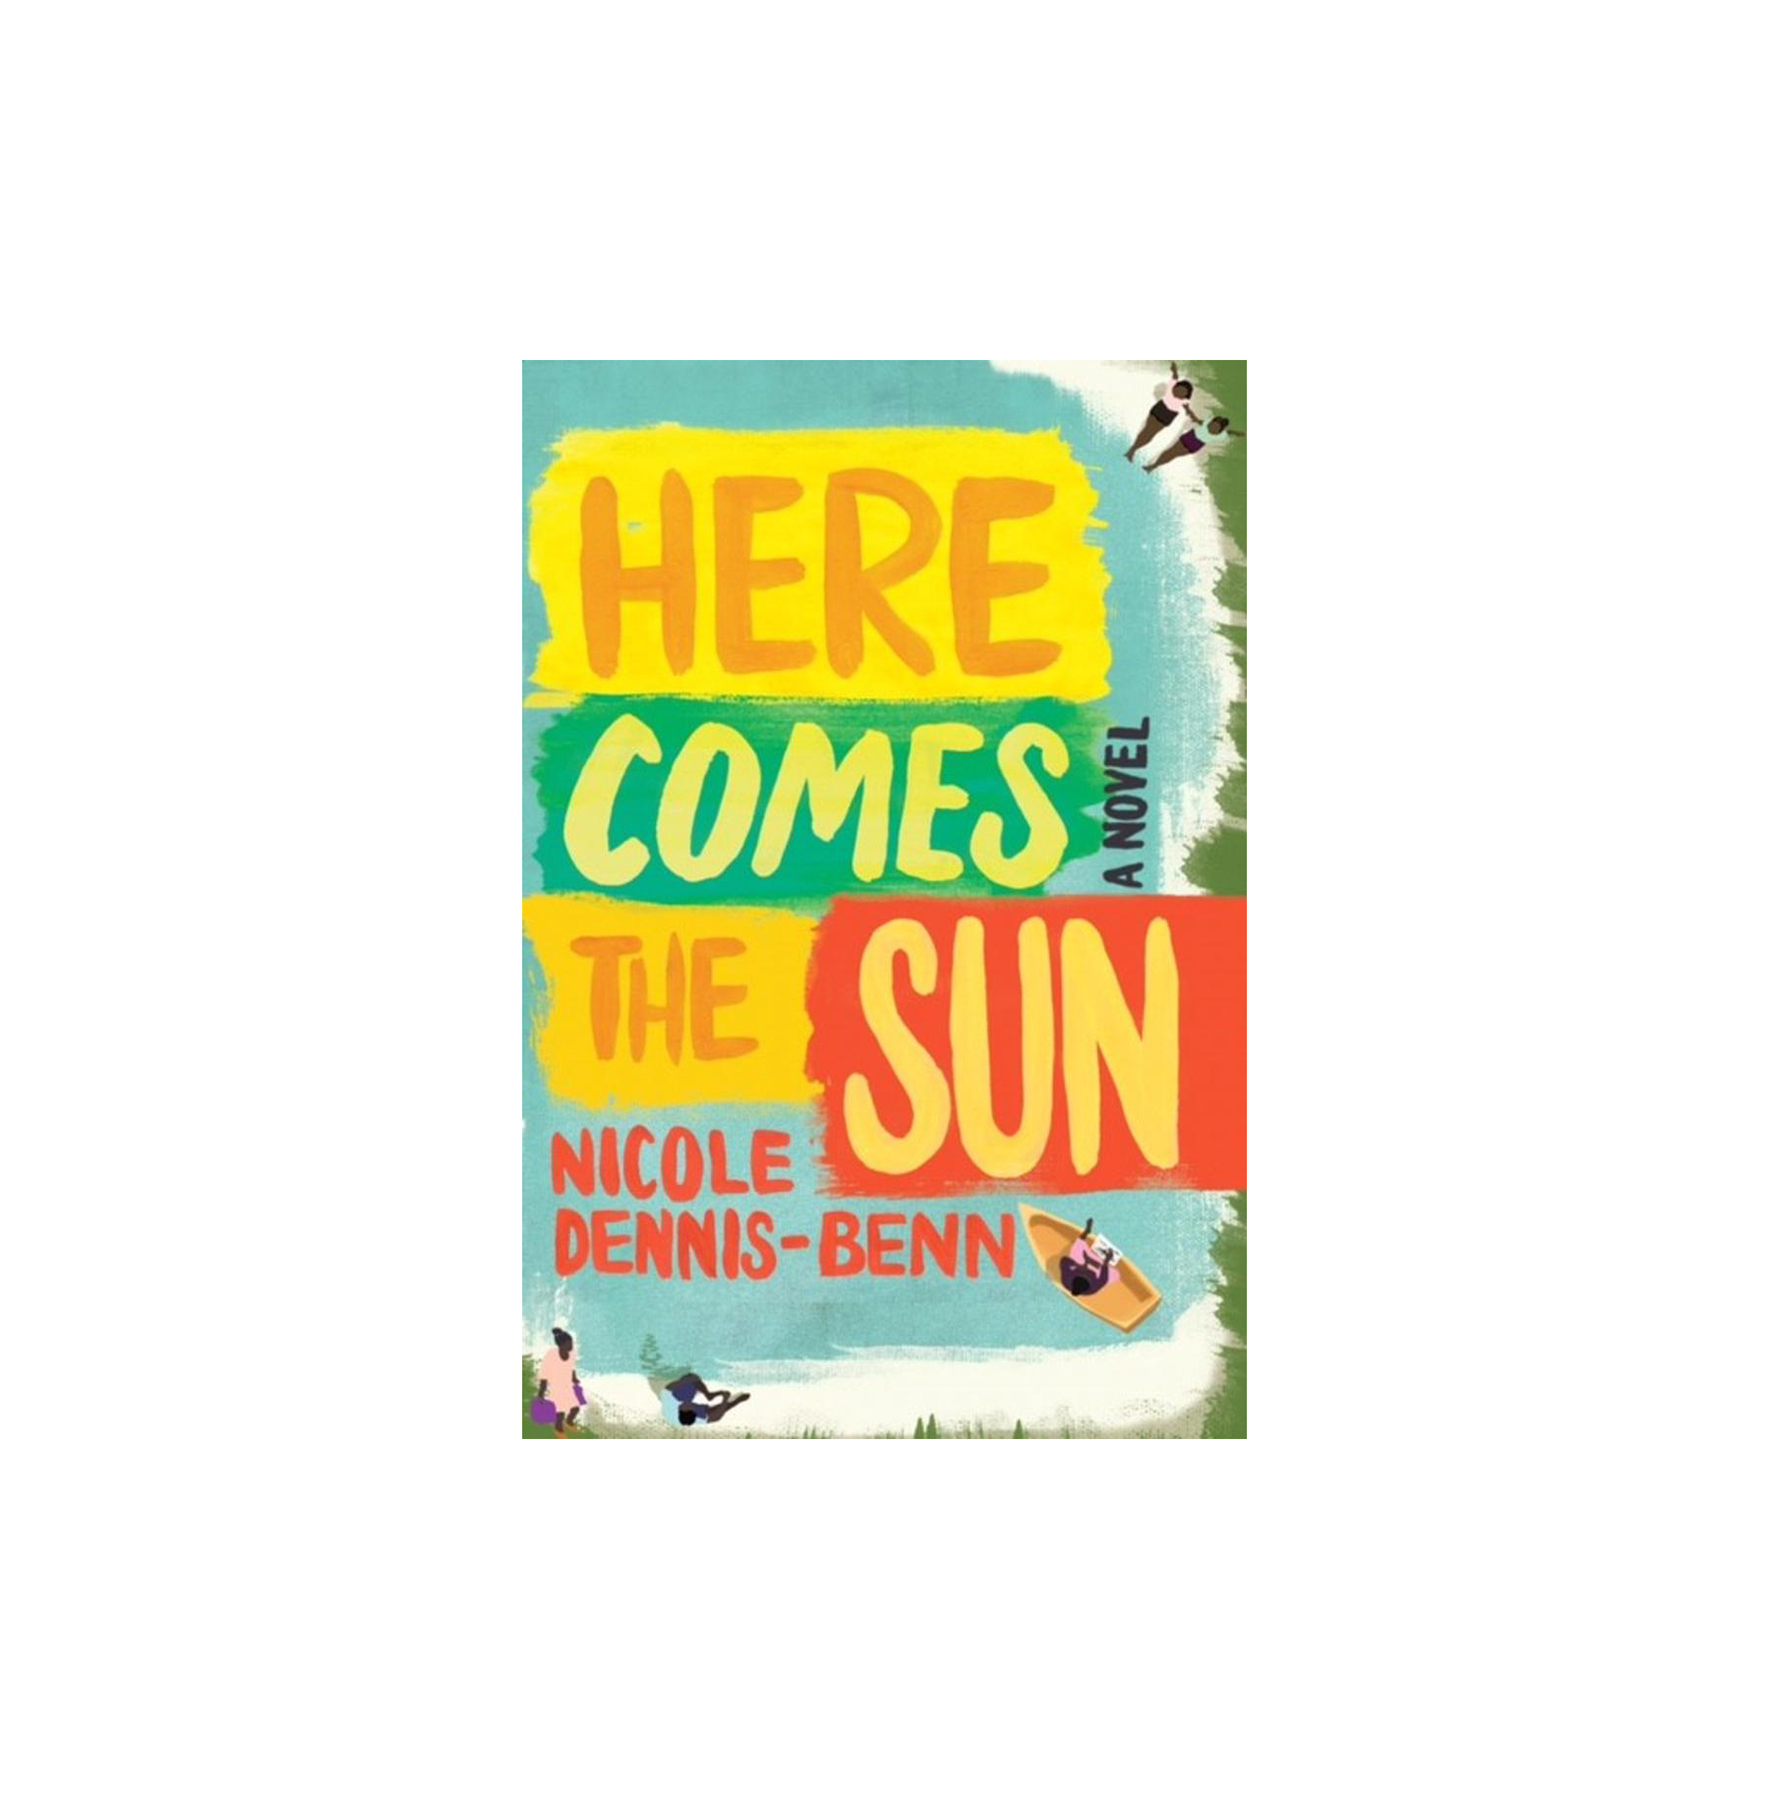 Here Comes the Sun, by Nichole Dennis-Benn